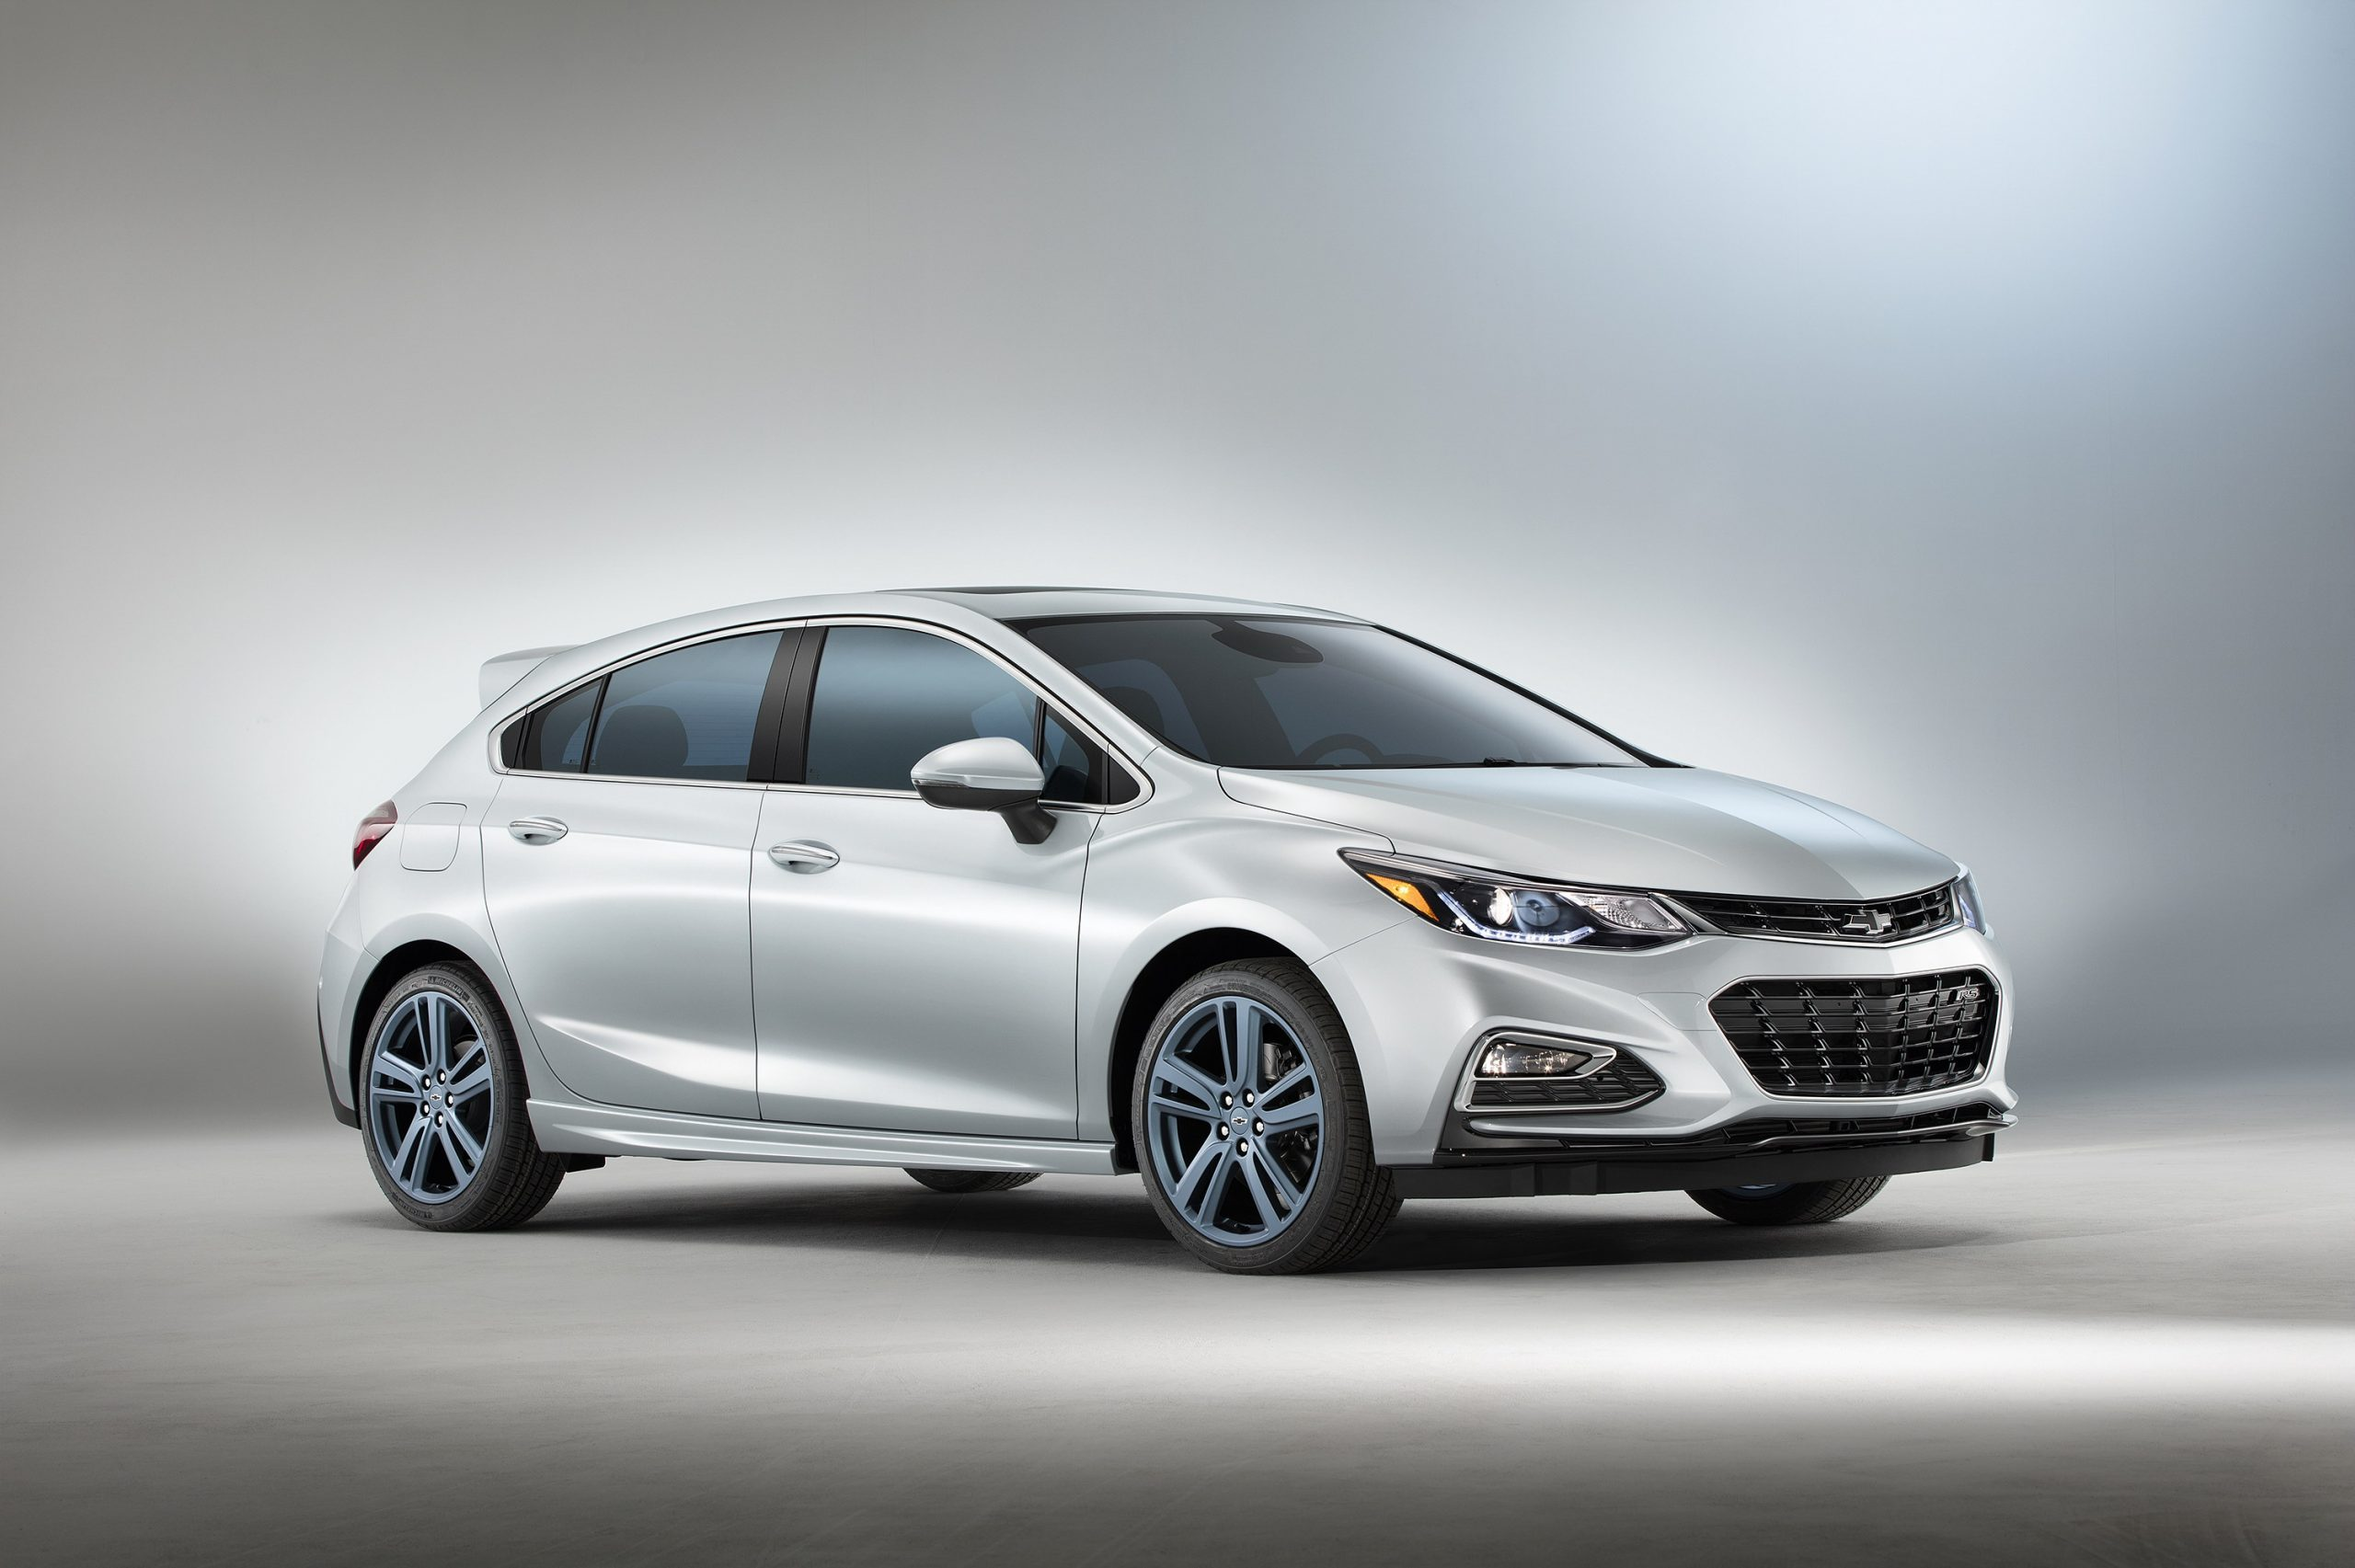 2017 Chevrolet Cruze Rs Hatch Blue Line   Top Speed 2021 Chevy Cruze Reviews, Accessories, Aftermarket Parts